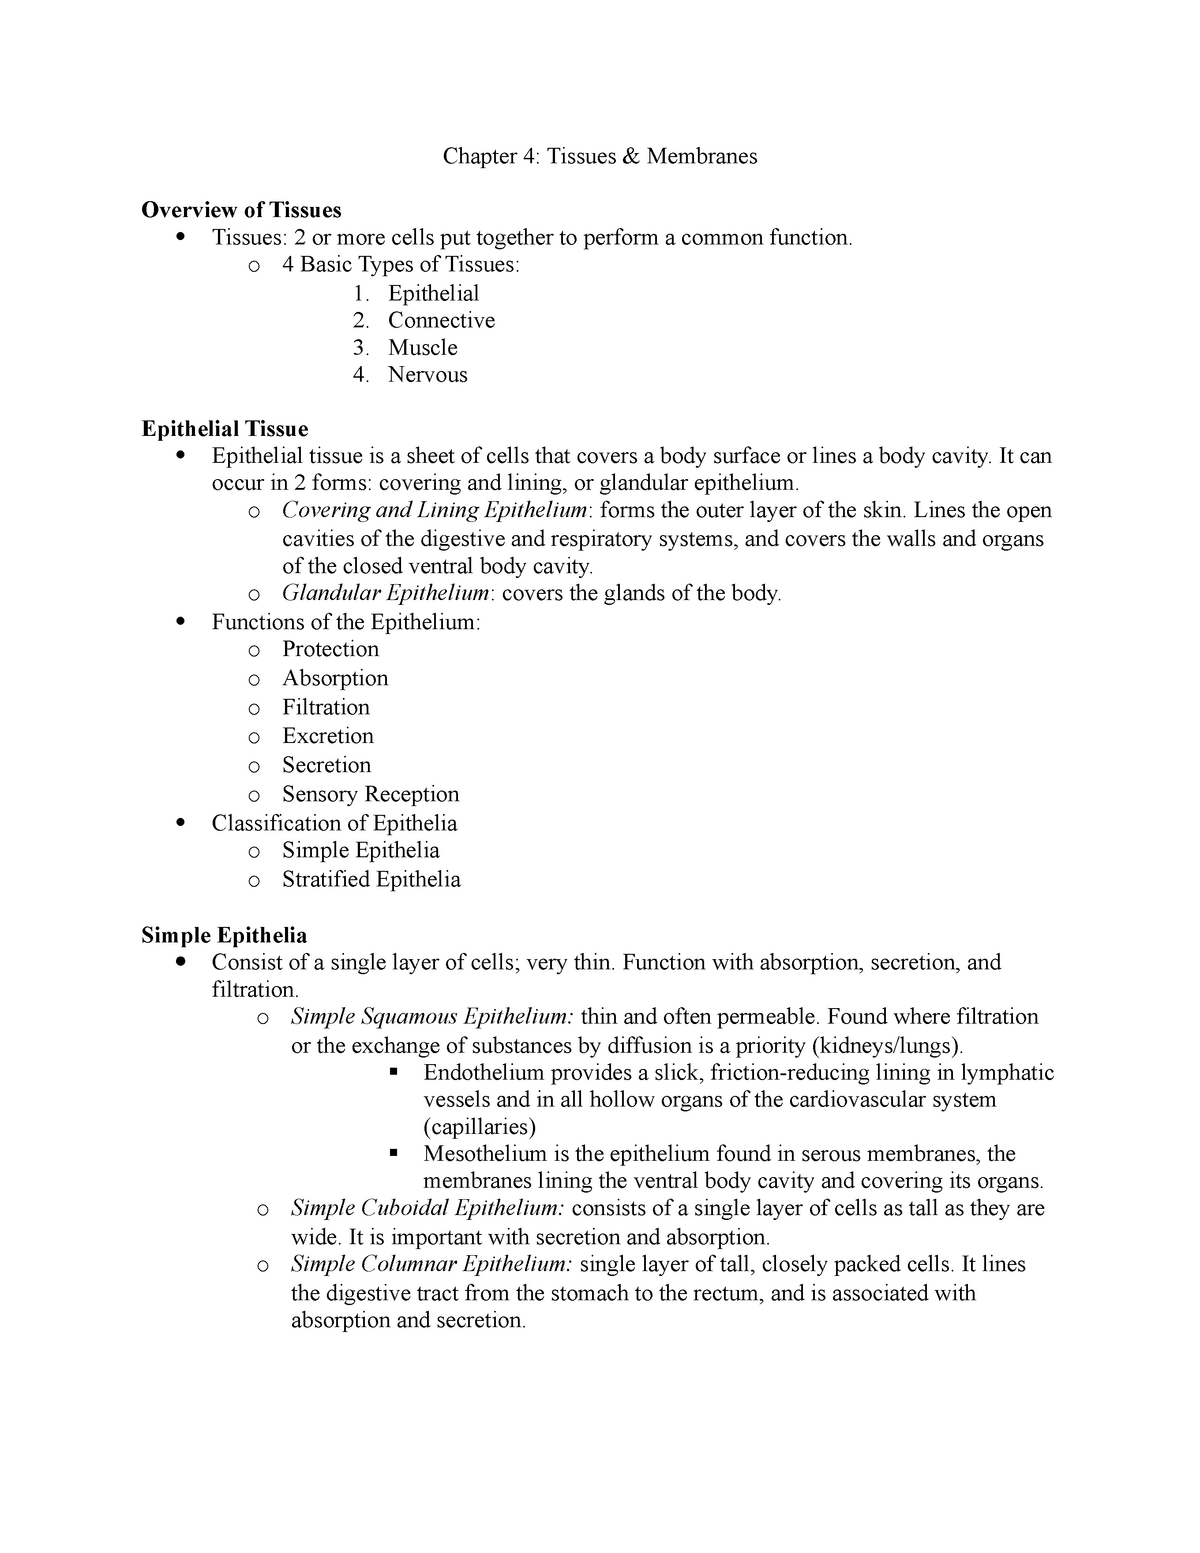 Skin And Body Membranes Chapter 4 Worksheet Answers ...